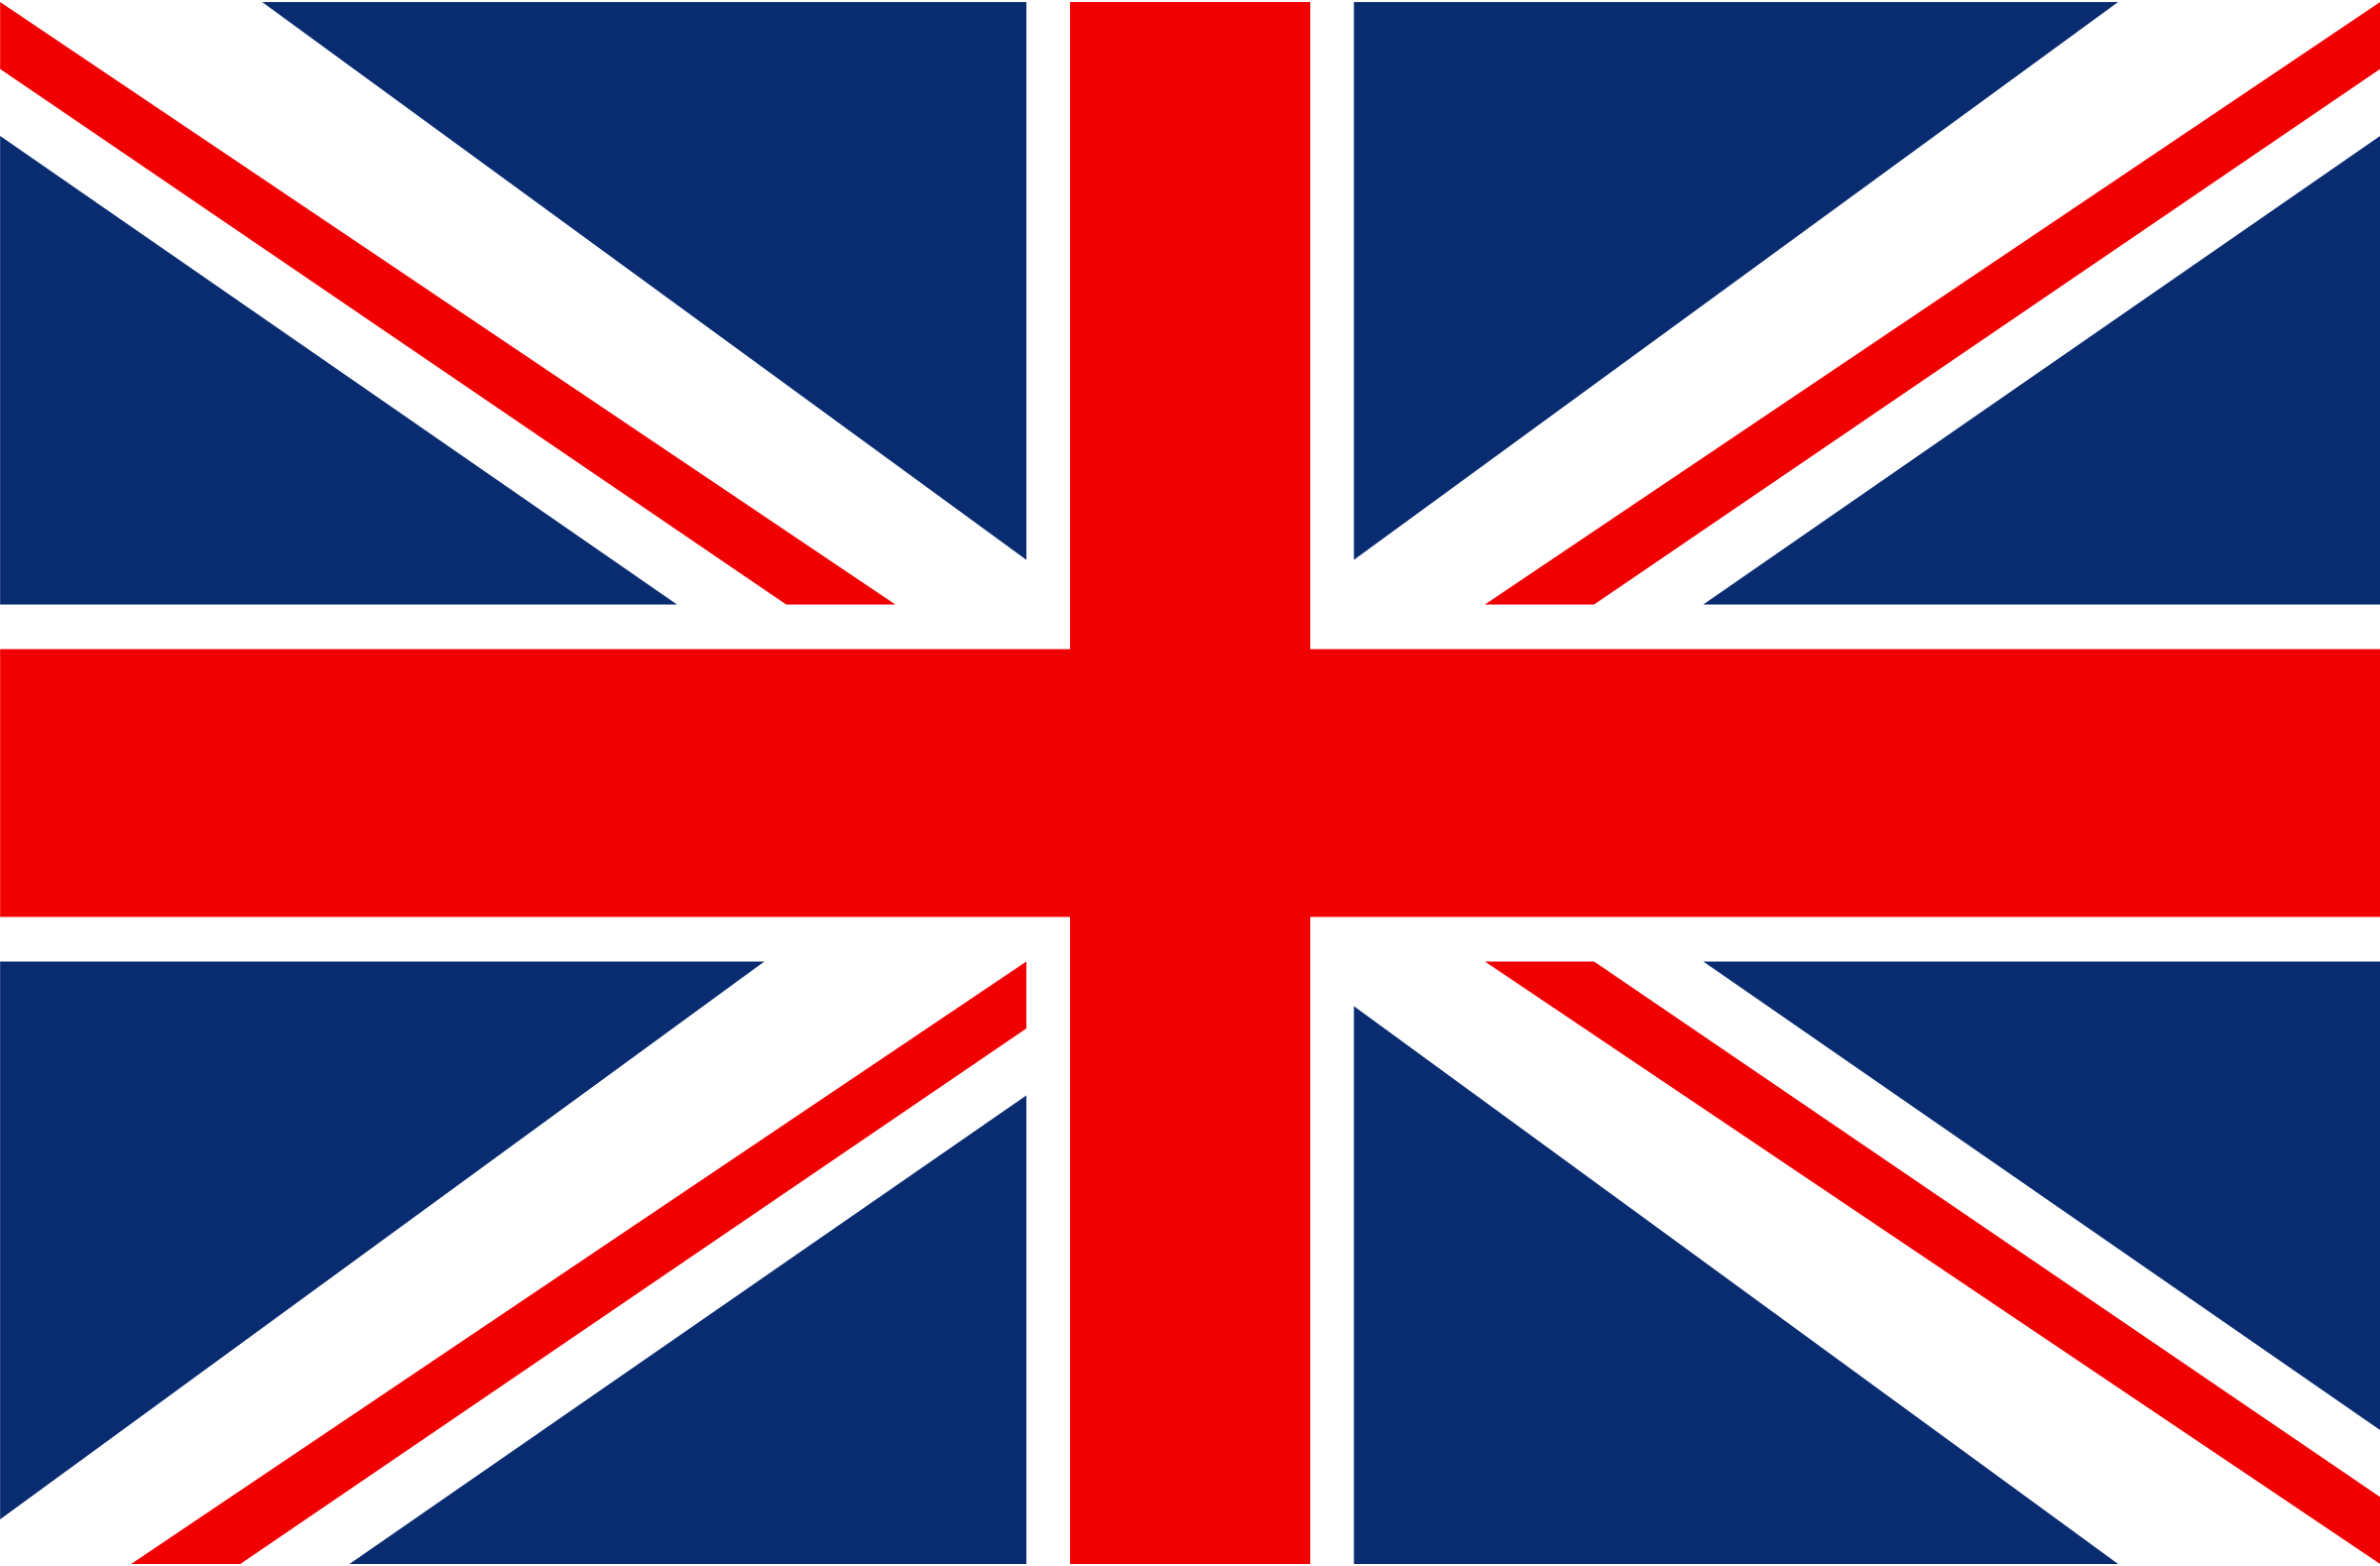 The Union Jack Also Known As The Union Flag Is The National Flag Of The United Kingdom